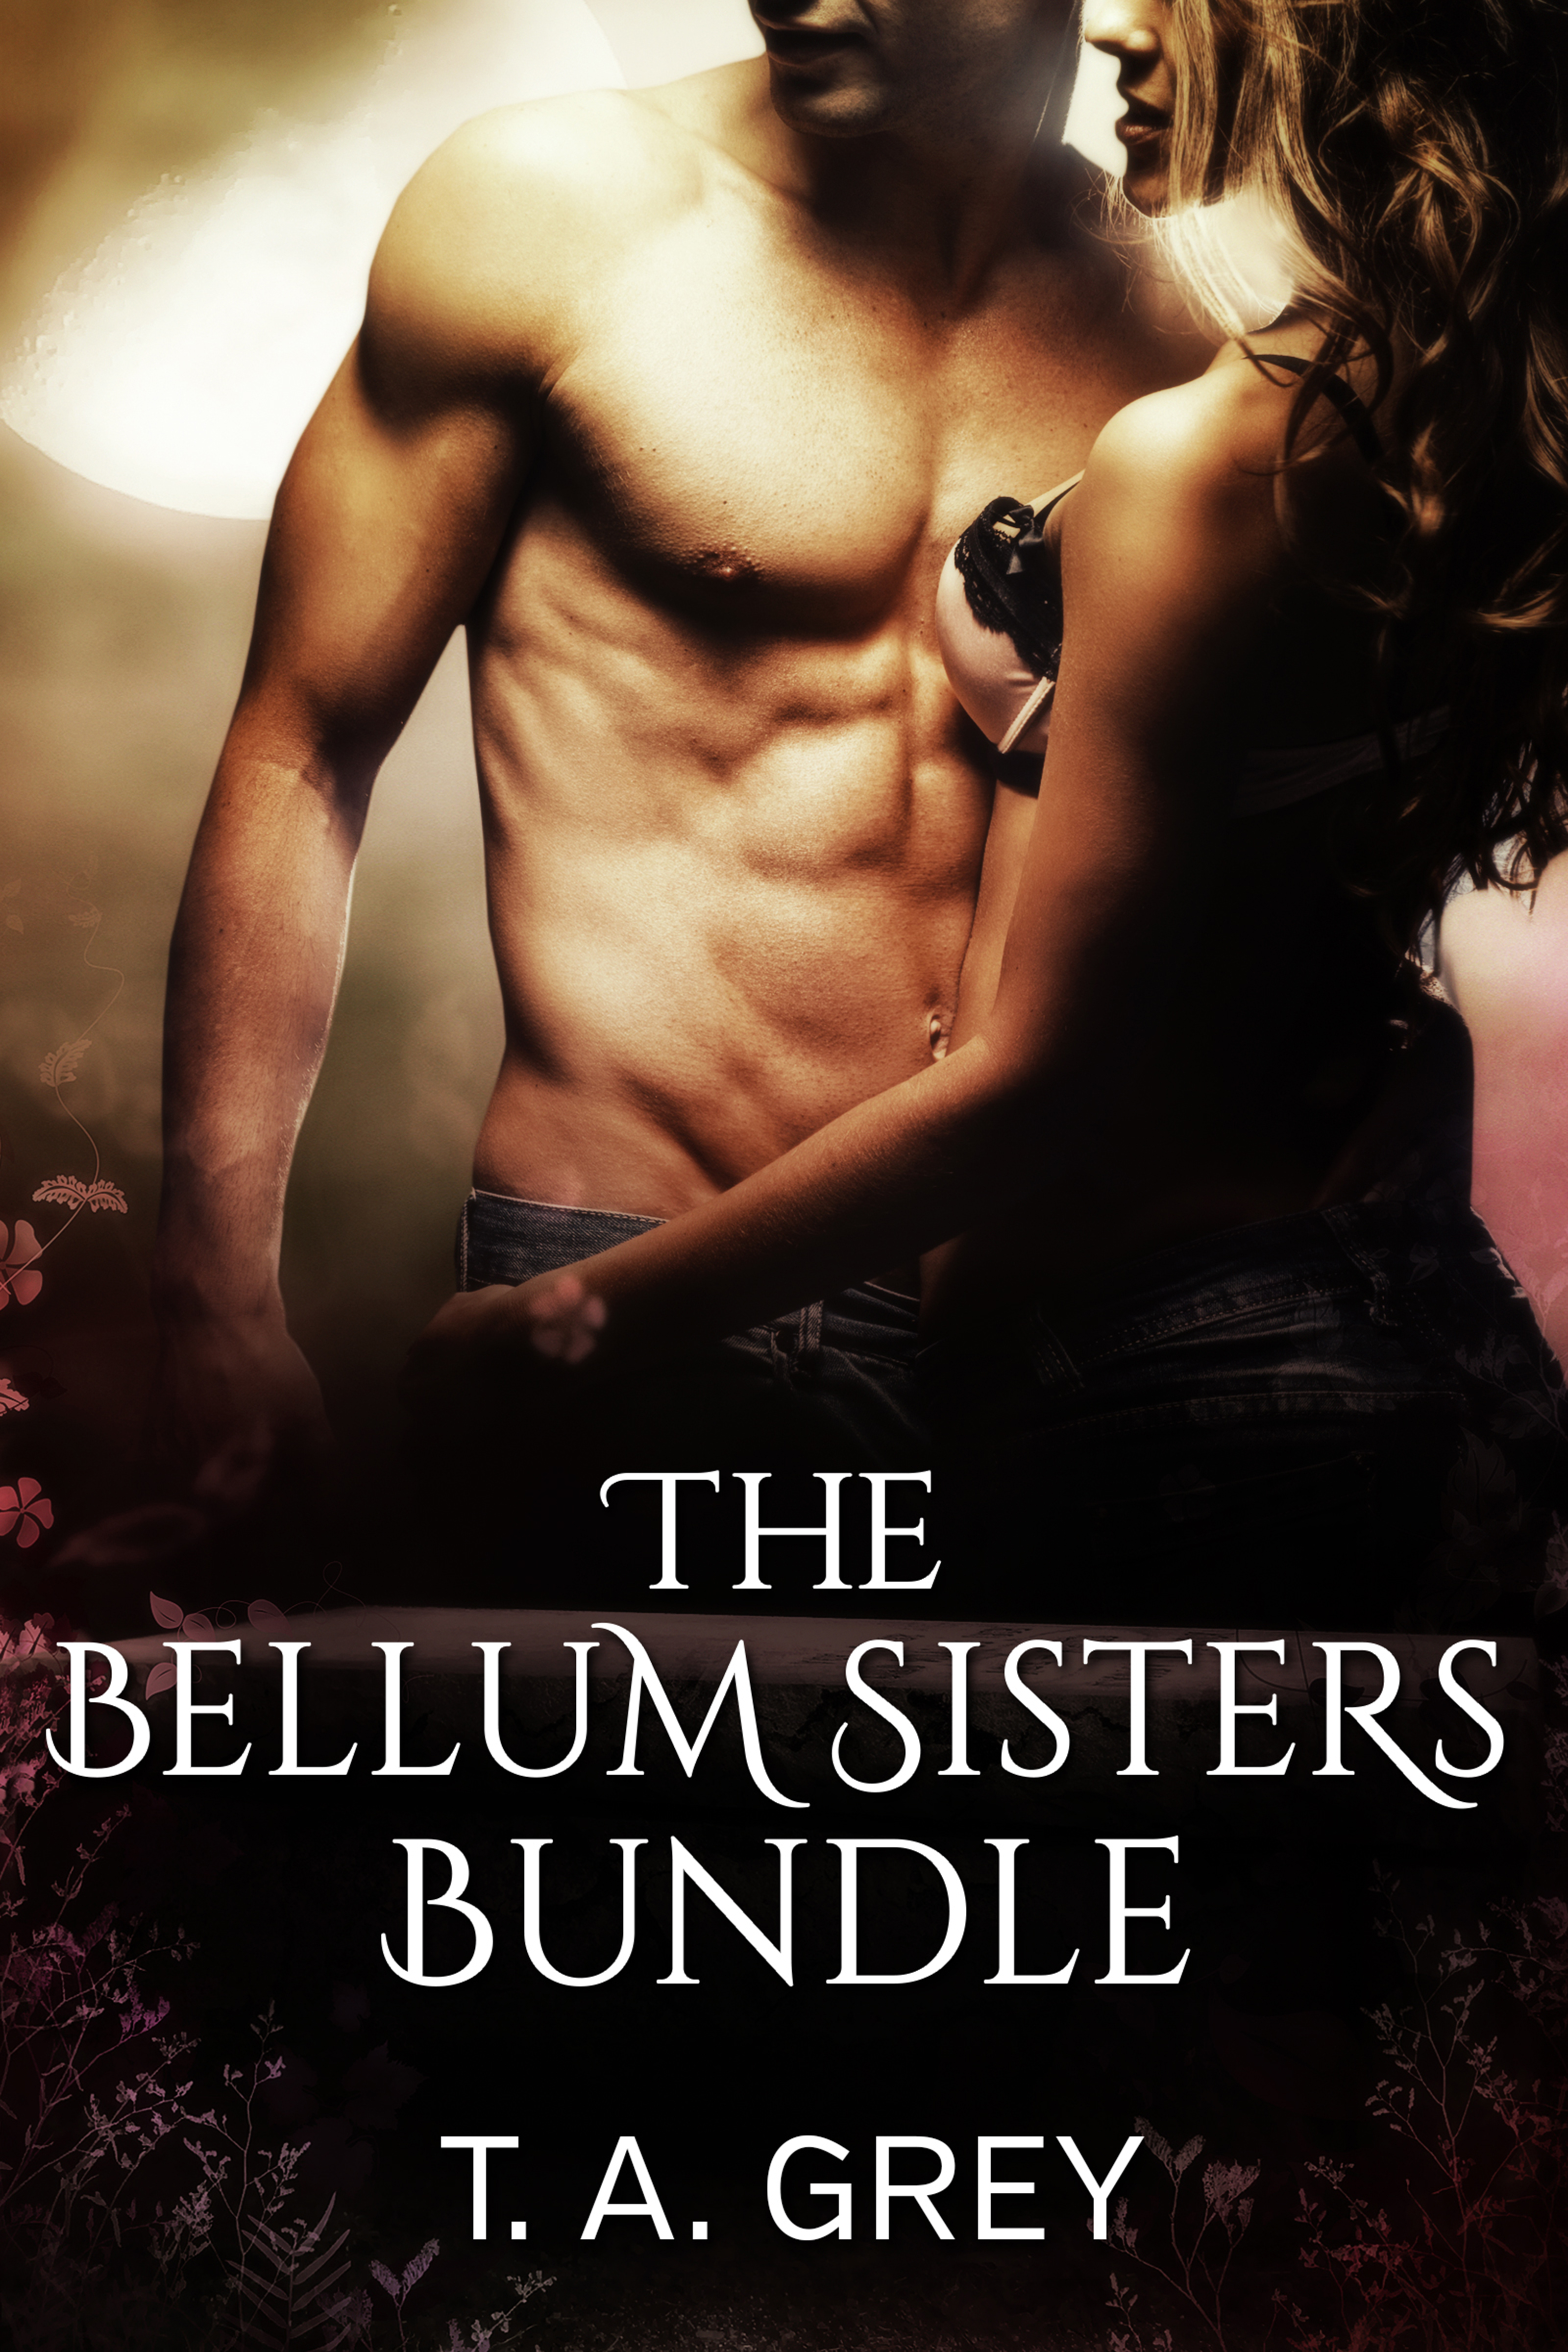 T. A. Grey - The Bellum Sisters Book Bundle